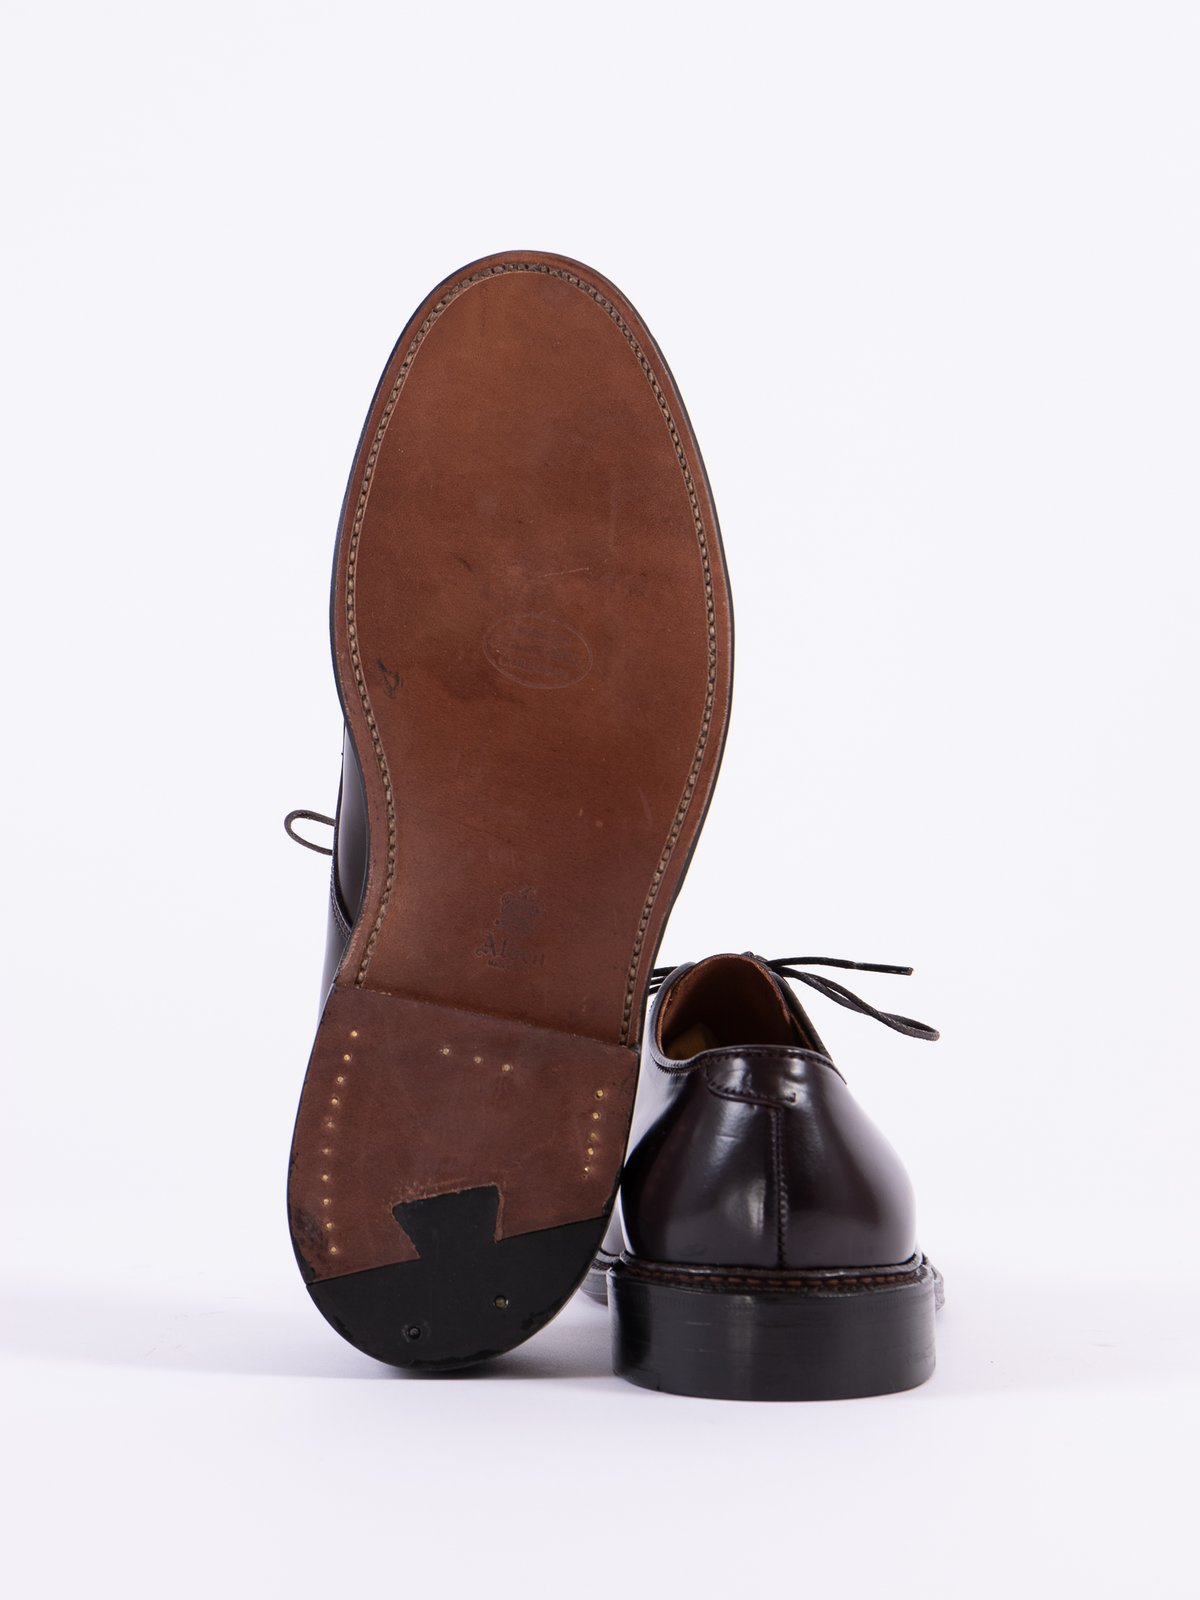 Color 8 Cordovan Plain Toe Blucher with Leather Sole - Image 5